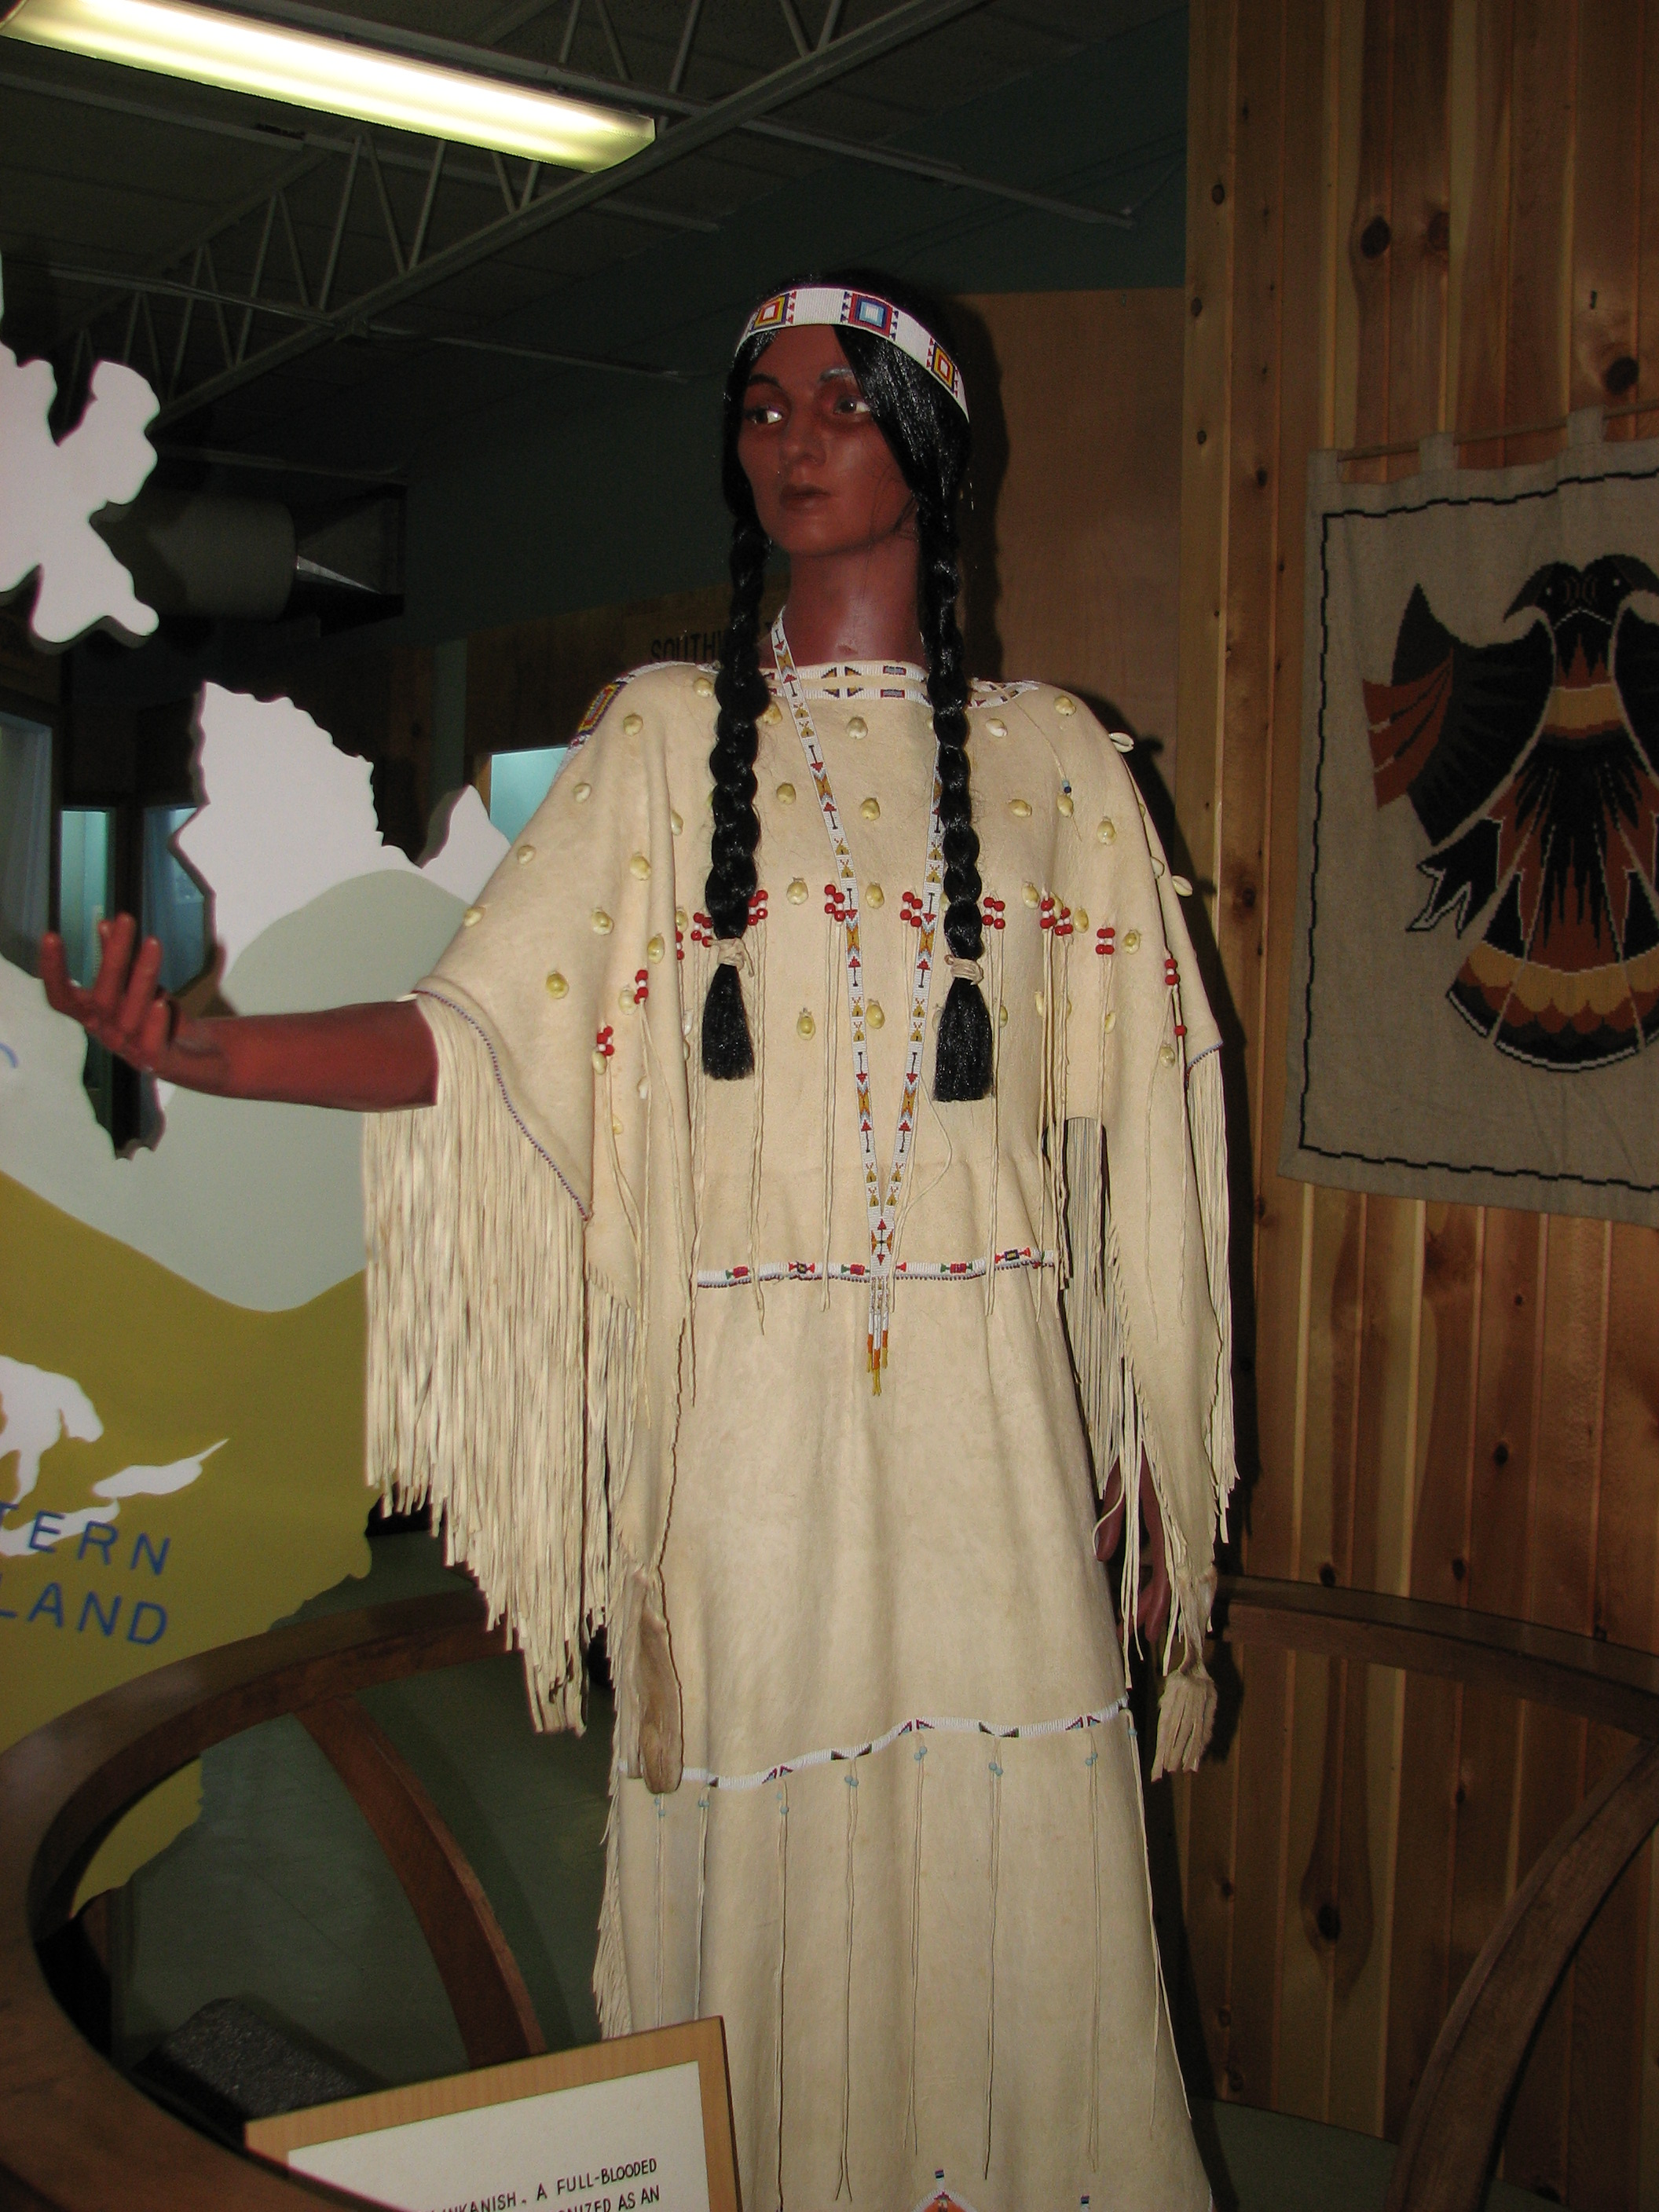 hindu single men in cheyenne county Traditional cherokees consult with medicine people for help with medical problems, dilemmas in their lives, or other problems there are fewer medicine people alive and practicing today, but those few are still known by traditionalists and others in cherokee communities.